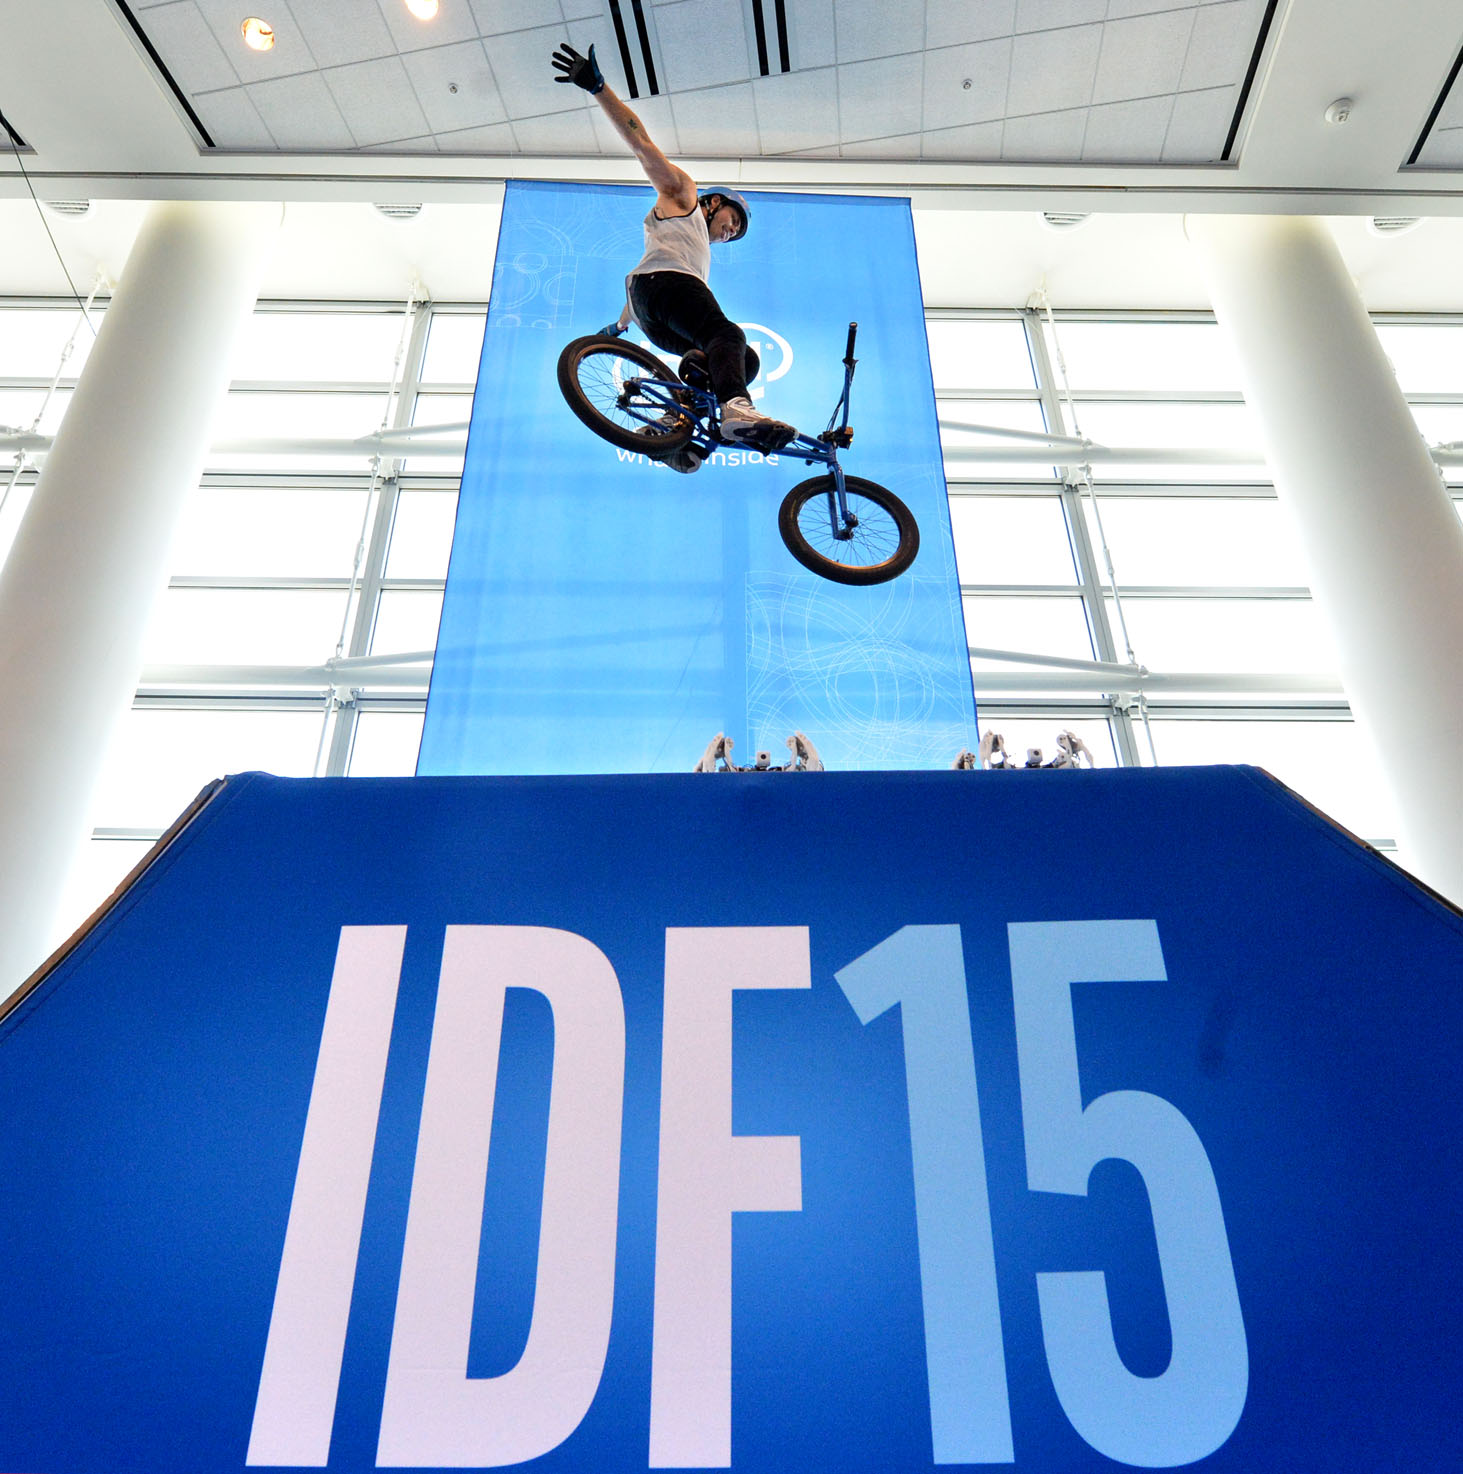 """A BMX rider performs a trick with a bicycle with an Intel Curie moduleÊattached during the Intel IDF 2015 held at the Moscone Center in San Francisco, Calif., on Tuesday, August 18, 2015. The Curie module packs a robust set of features into its tiny size that are ideal for """"always-on"""" applications such as social media, sports, and fitness activities."""